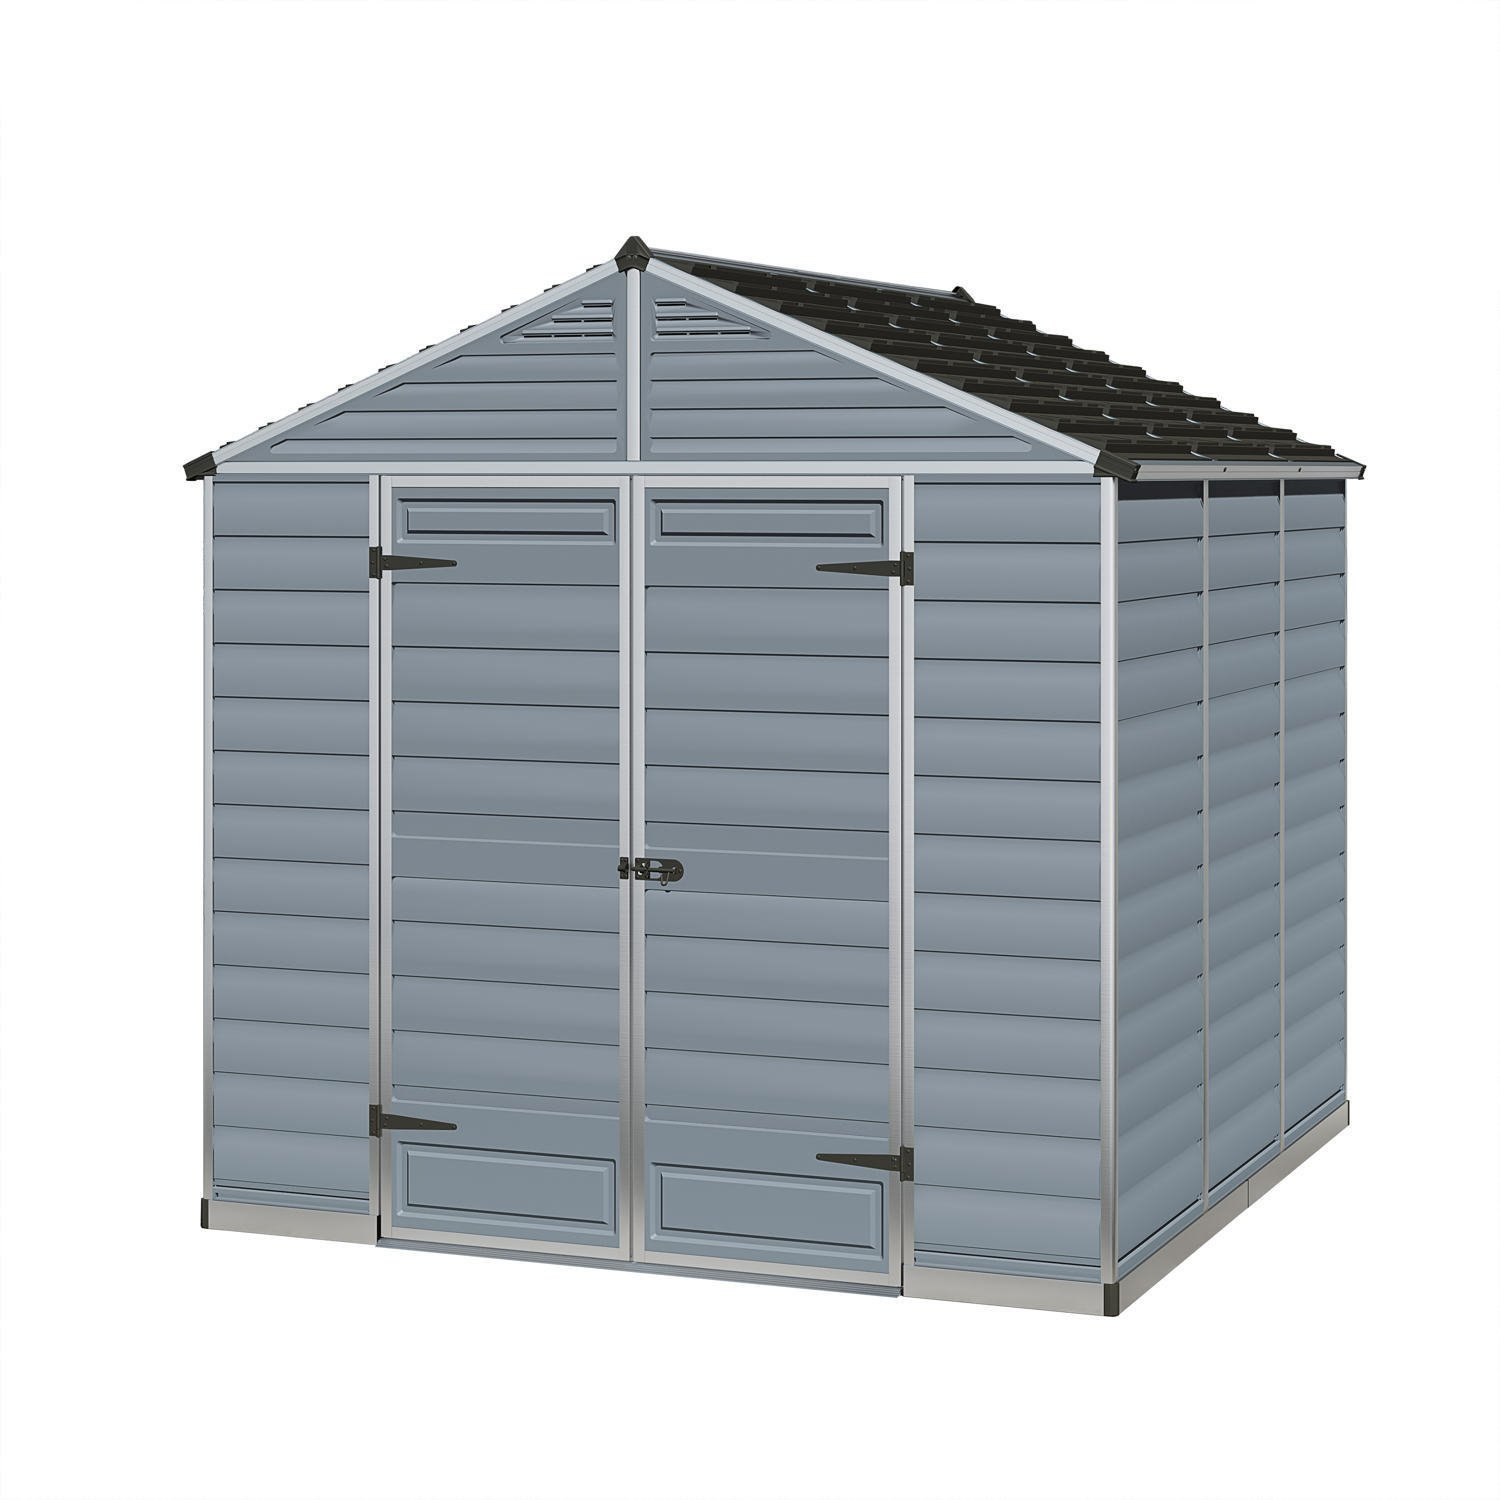 Palram 8x8 Plastic Skylight Grey Shed Greenhouse Stores